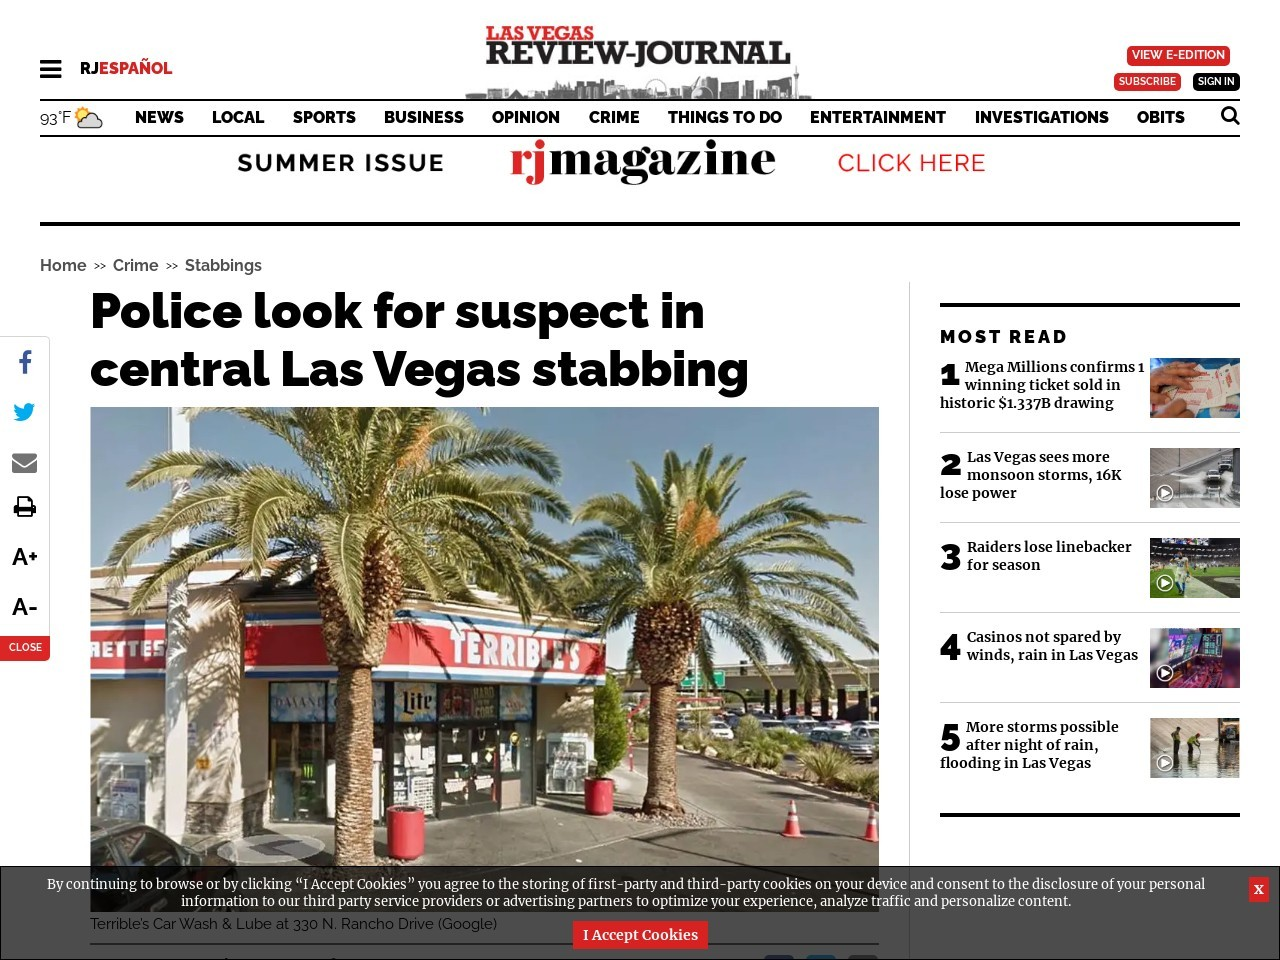 Police look for suspect in central Las Vegas stabbing